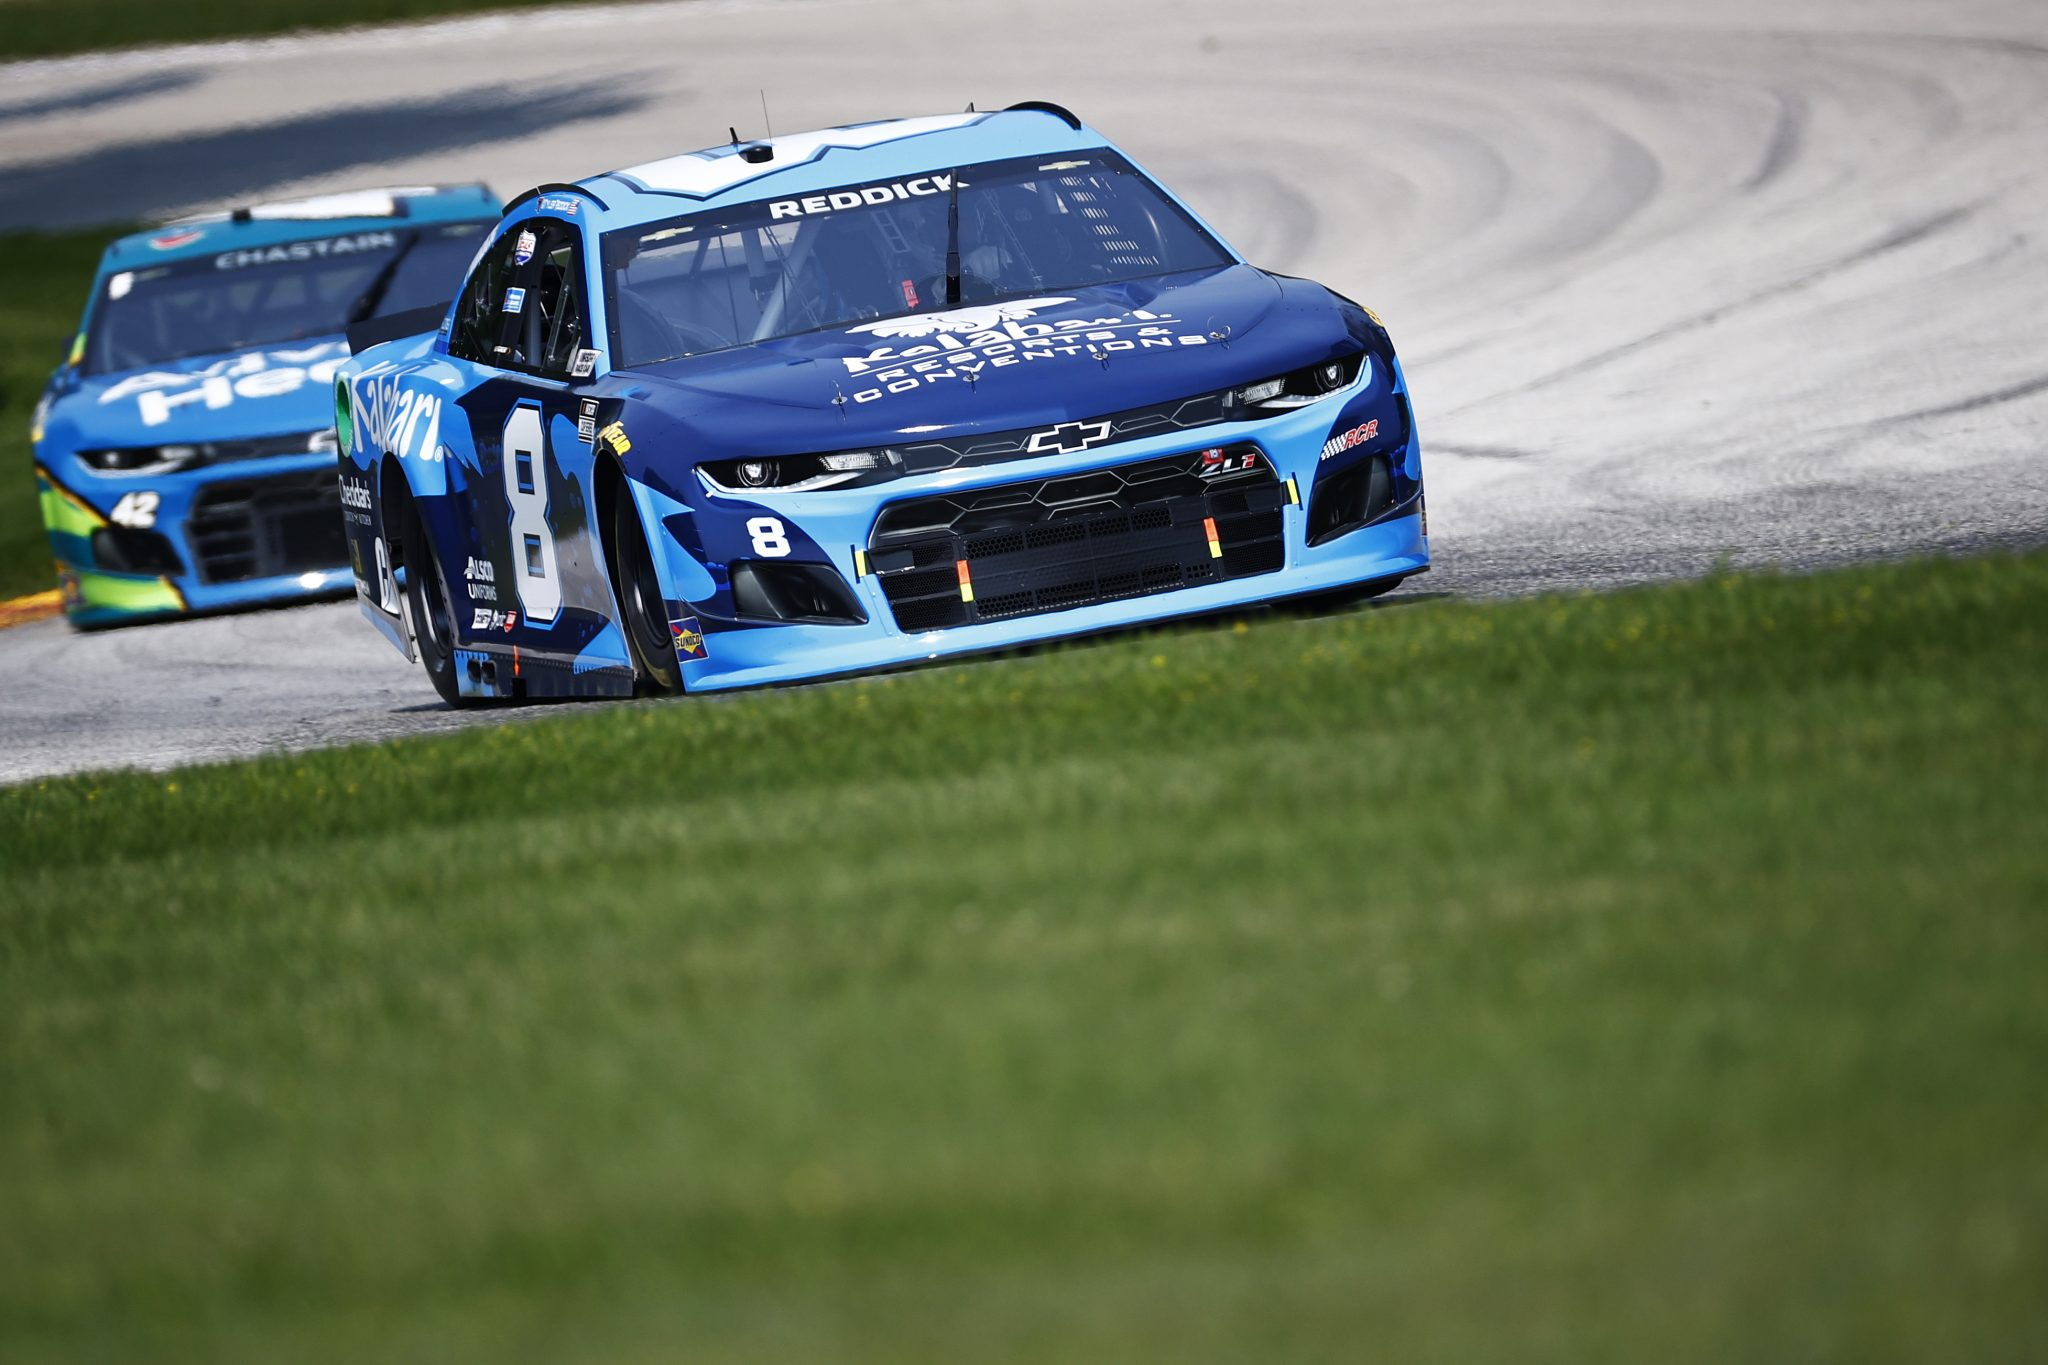 ELKHART LAKE, WISCONSIN - JULY 03: Tyler Reddick, driver of the #8 Kalahari Resorts + Conventions Chevrolet, drives during practice for the NASCAR Cup Series Jockey Made in America 250 Presented by Kwik Trip at Road America on July 03, 2021 in Elkhart Lake, Wisconsin. (Photo by Jared C. Tilton/Getty Images)   Getty Images